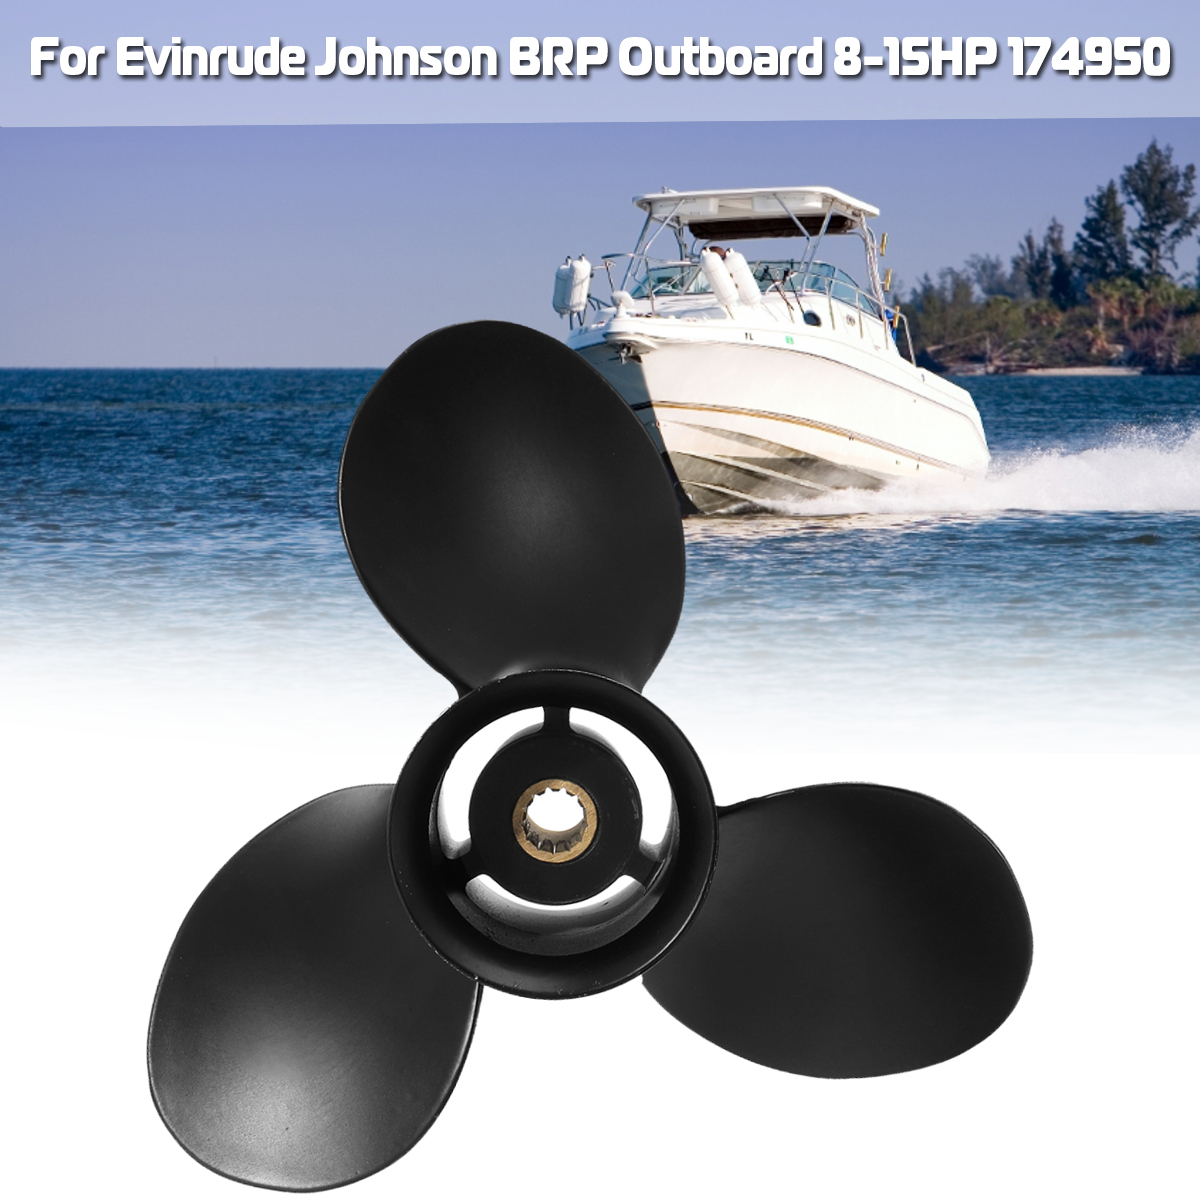 174950 / 778772 For Evinrude Johnson BRP 8-15HP 9 1/4 x 10 Outboard Propeller Aluminum Alloy Black 3 Blades 13 Spline Tooths